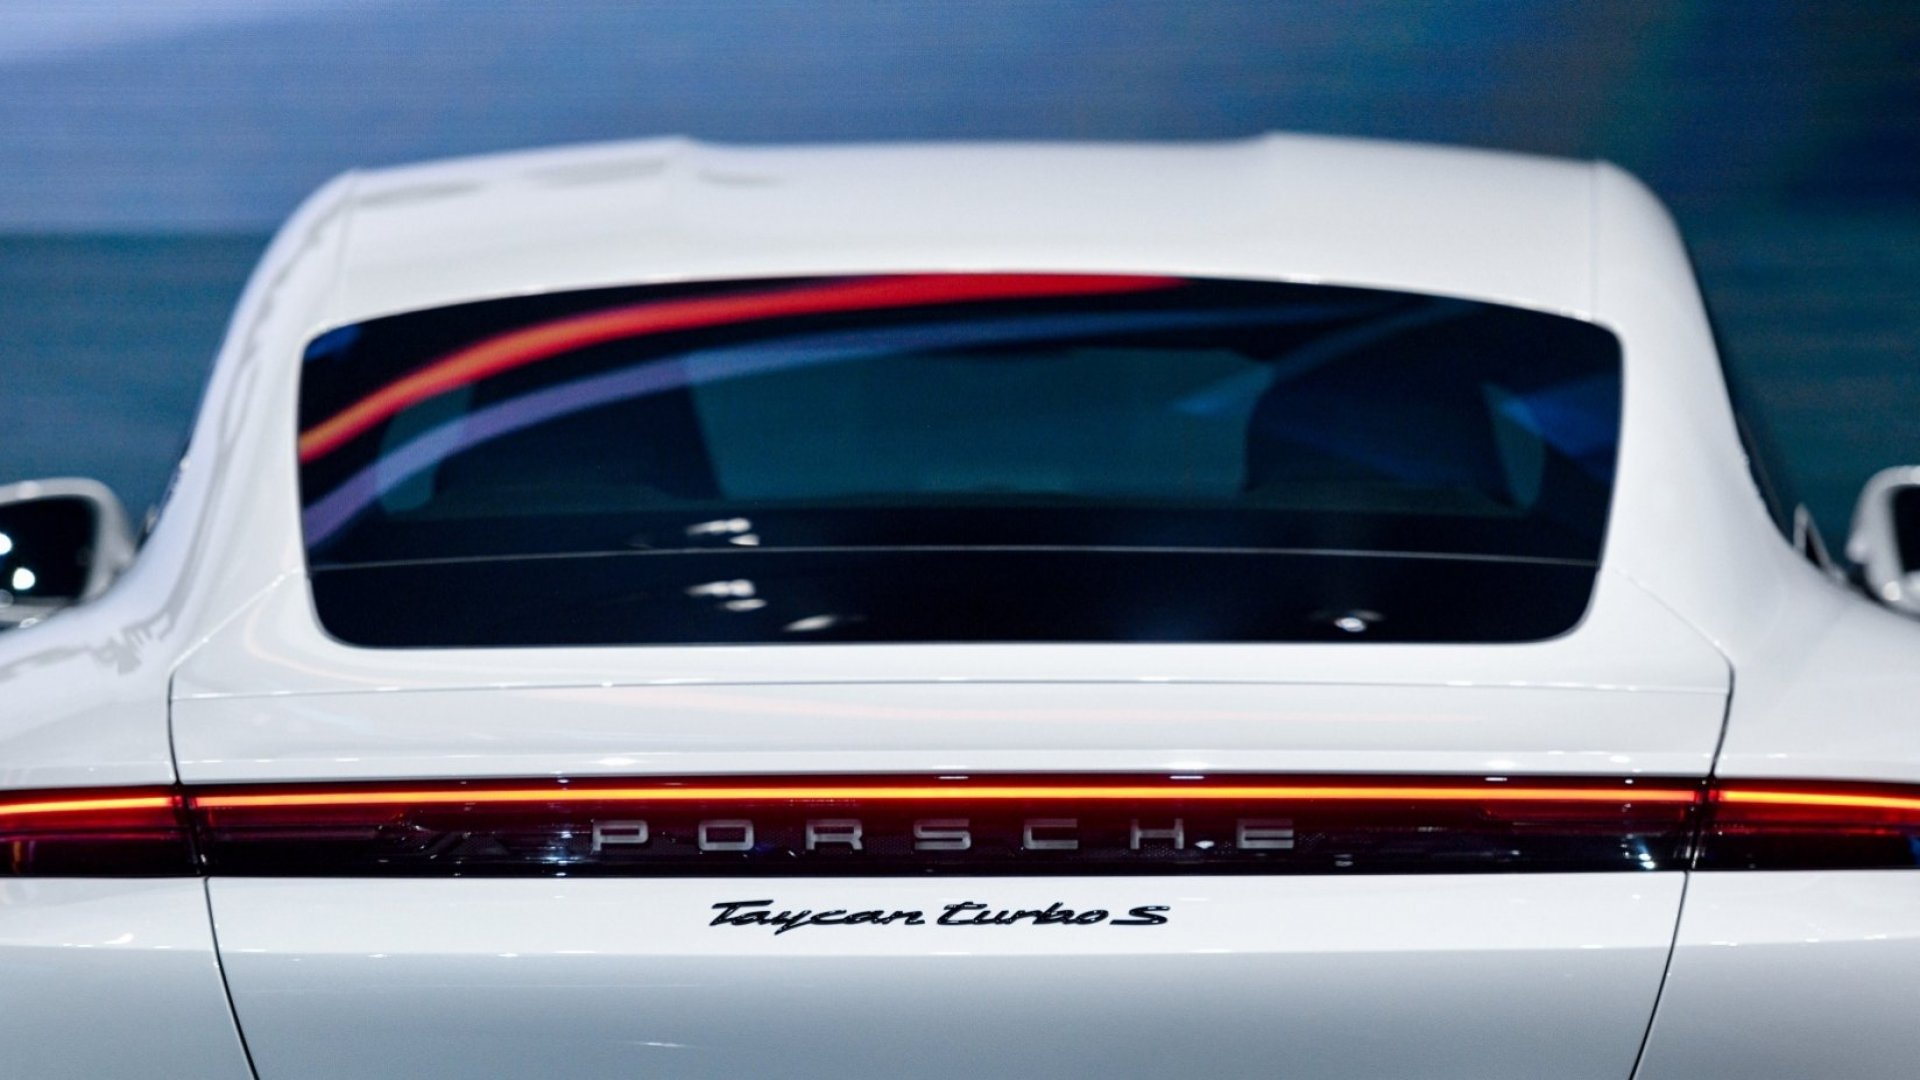 Porsche Finally Gives Tesla's Model S a Worthy Competitor. Here's Why Elon Musk Isn't Worried